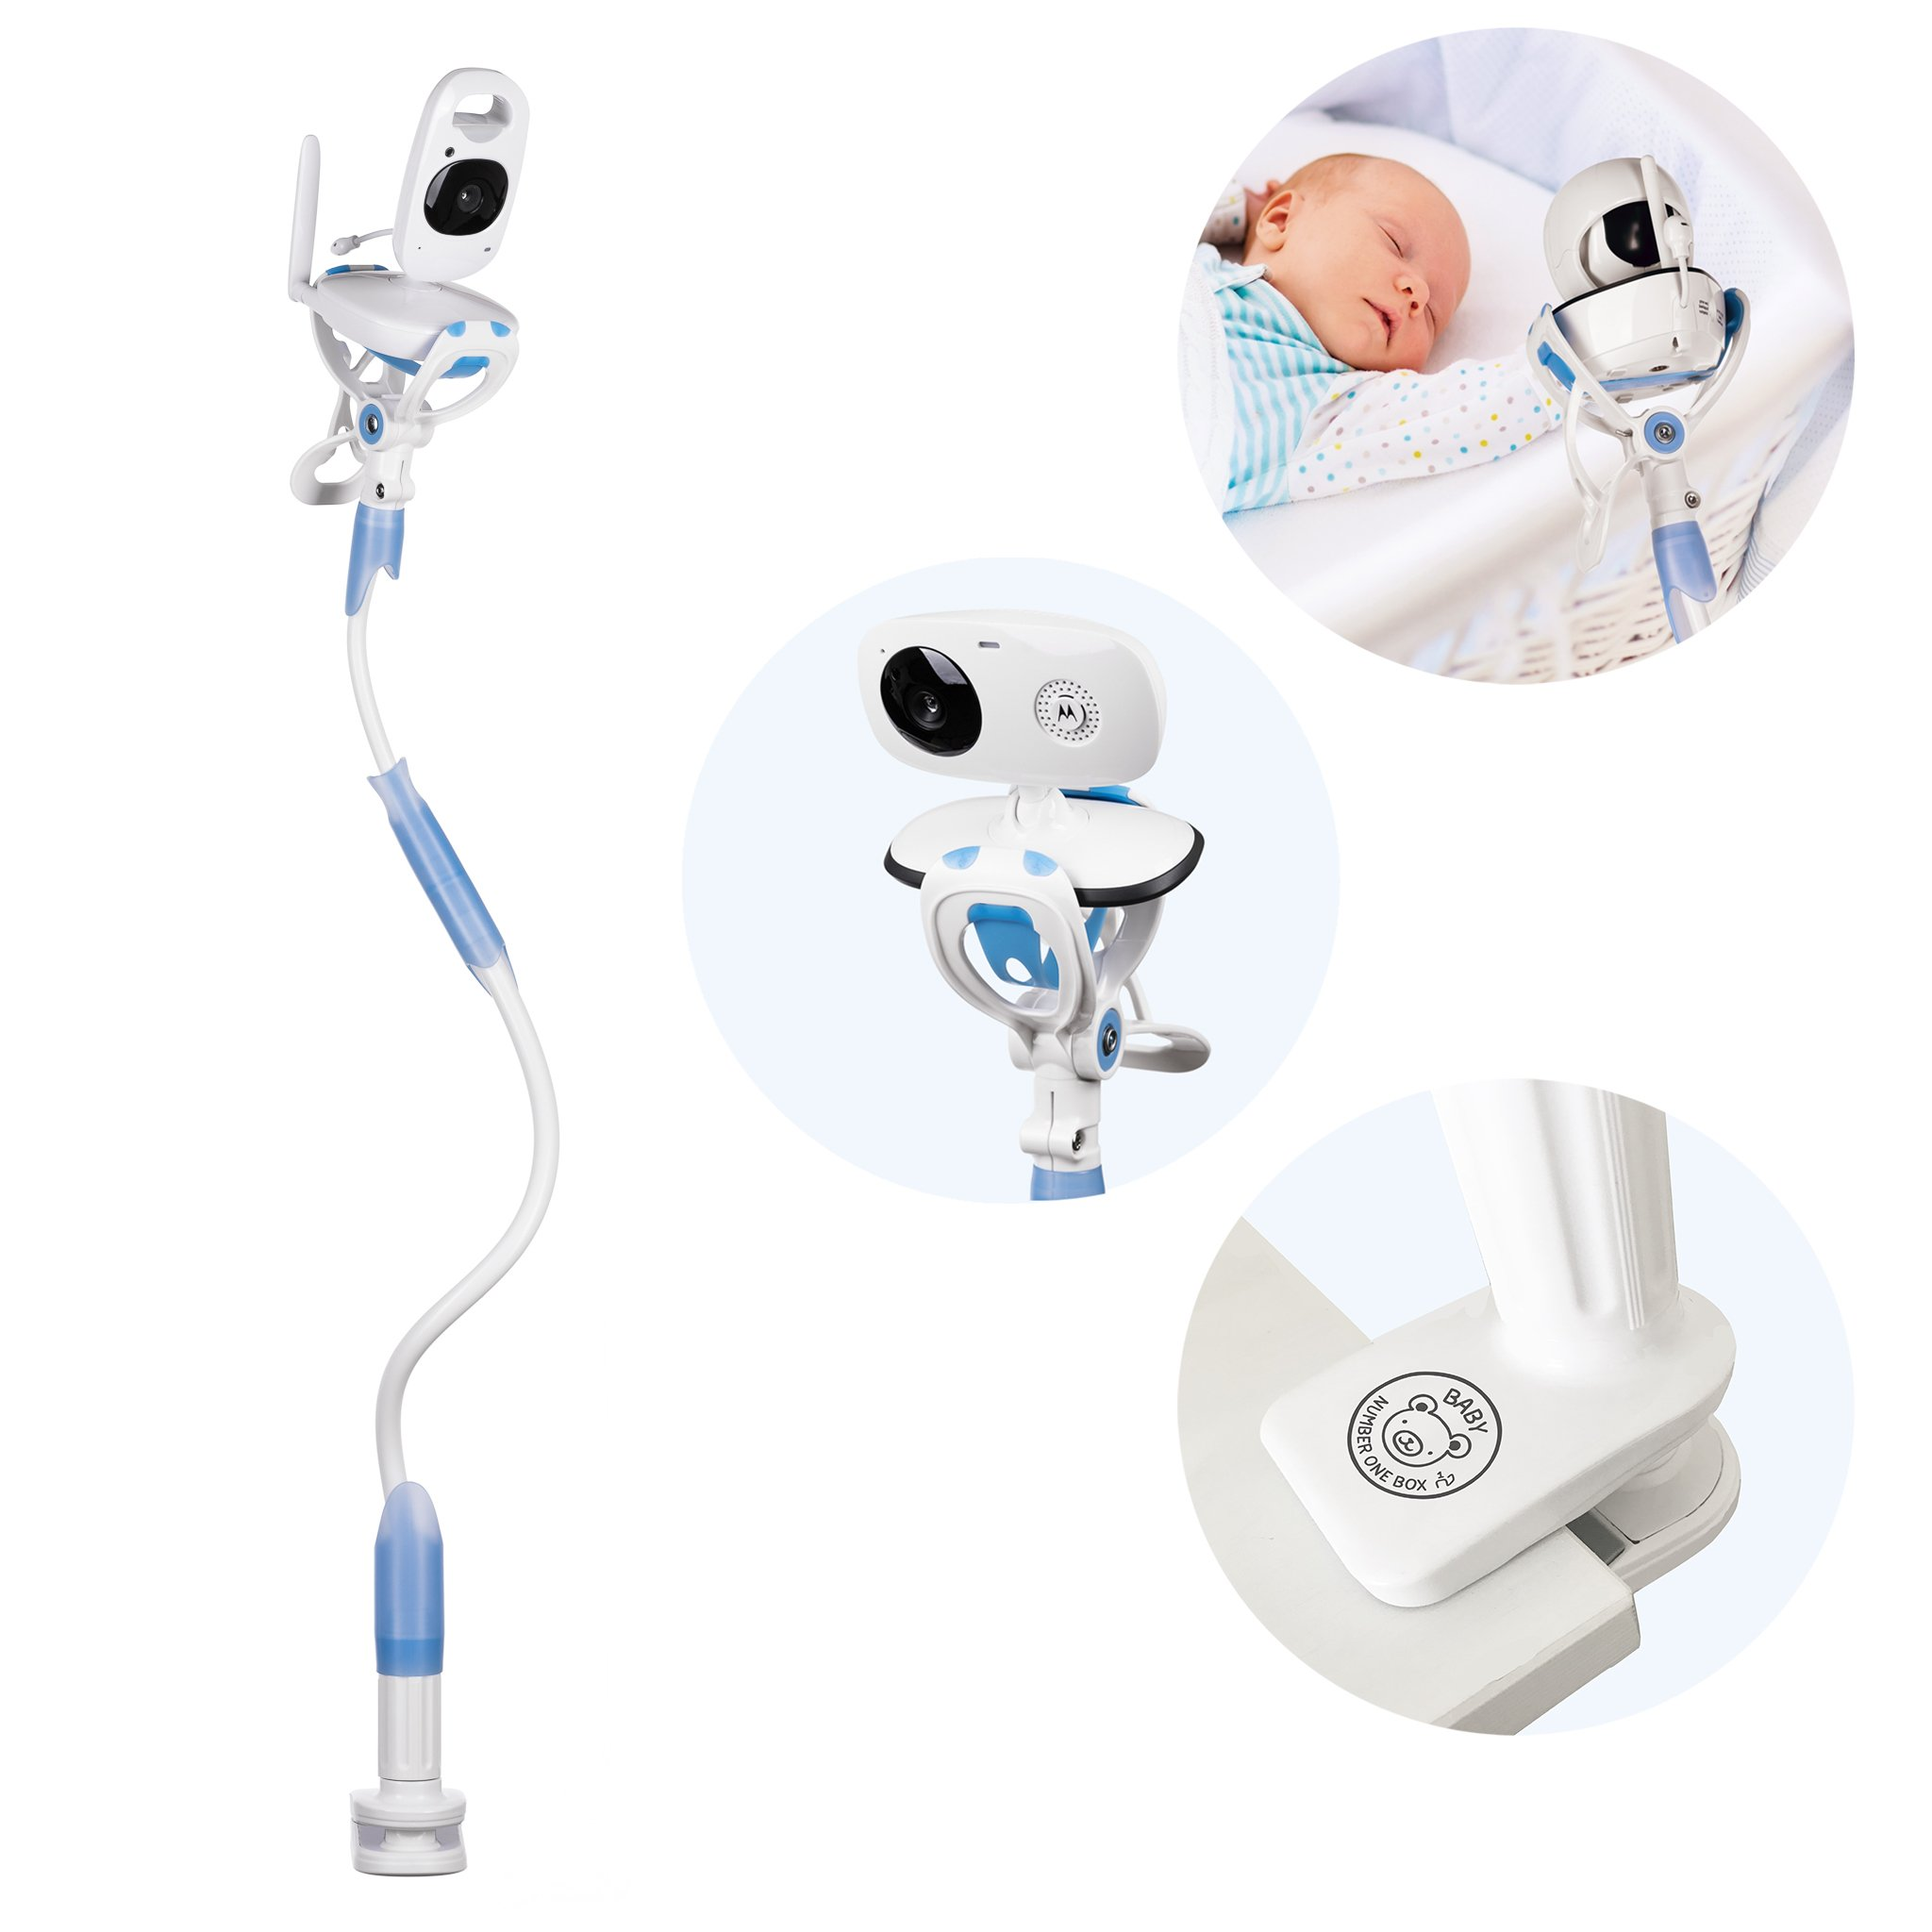 FlexxiCam Universal Baby Camera Mount, Infant Video Monitor Holder and Shelf - Flexible Camera Stand for Nursery Compatible with Most Baby Monitors